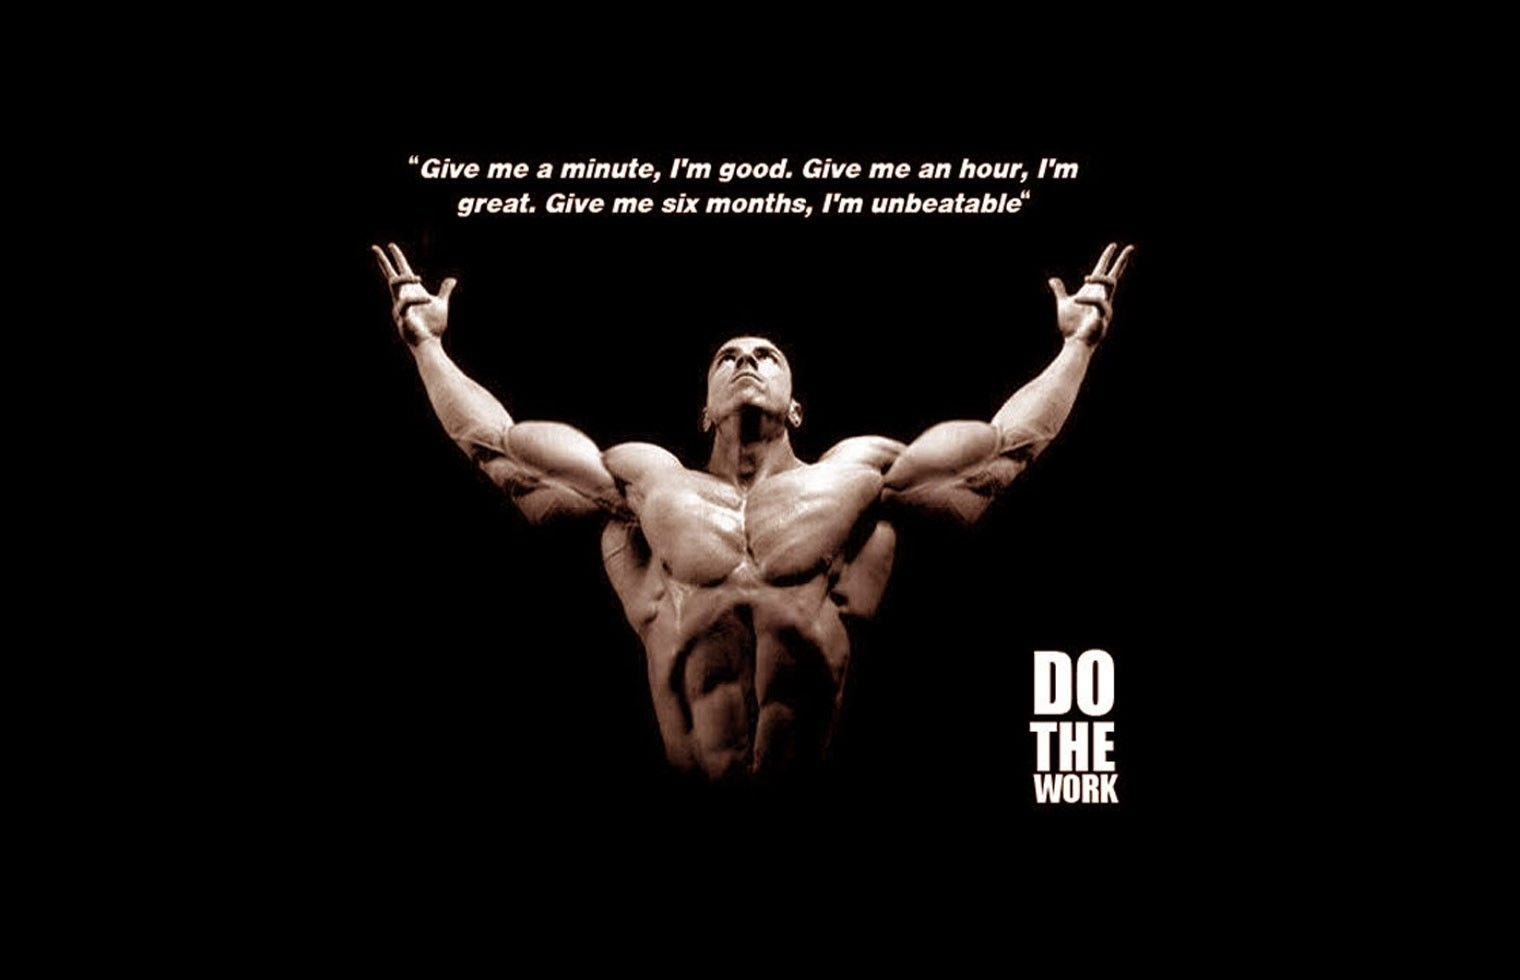 Gym Motivational Wallpapers Top Free Gym Motivational